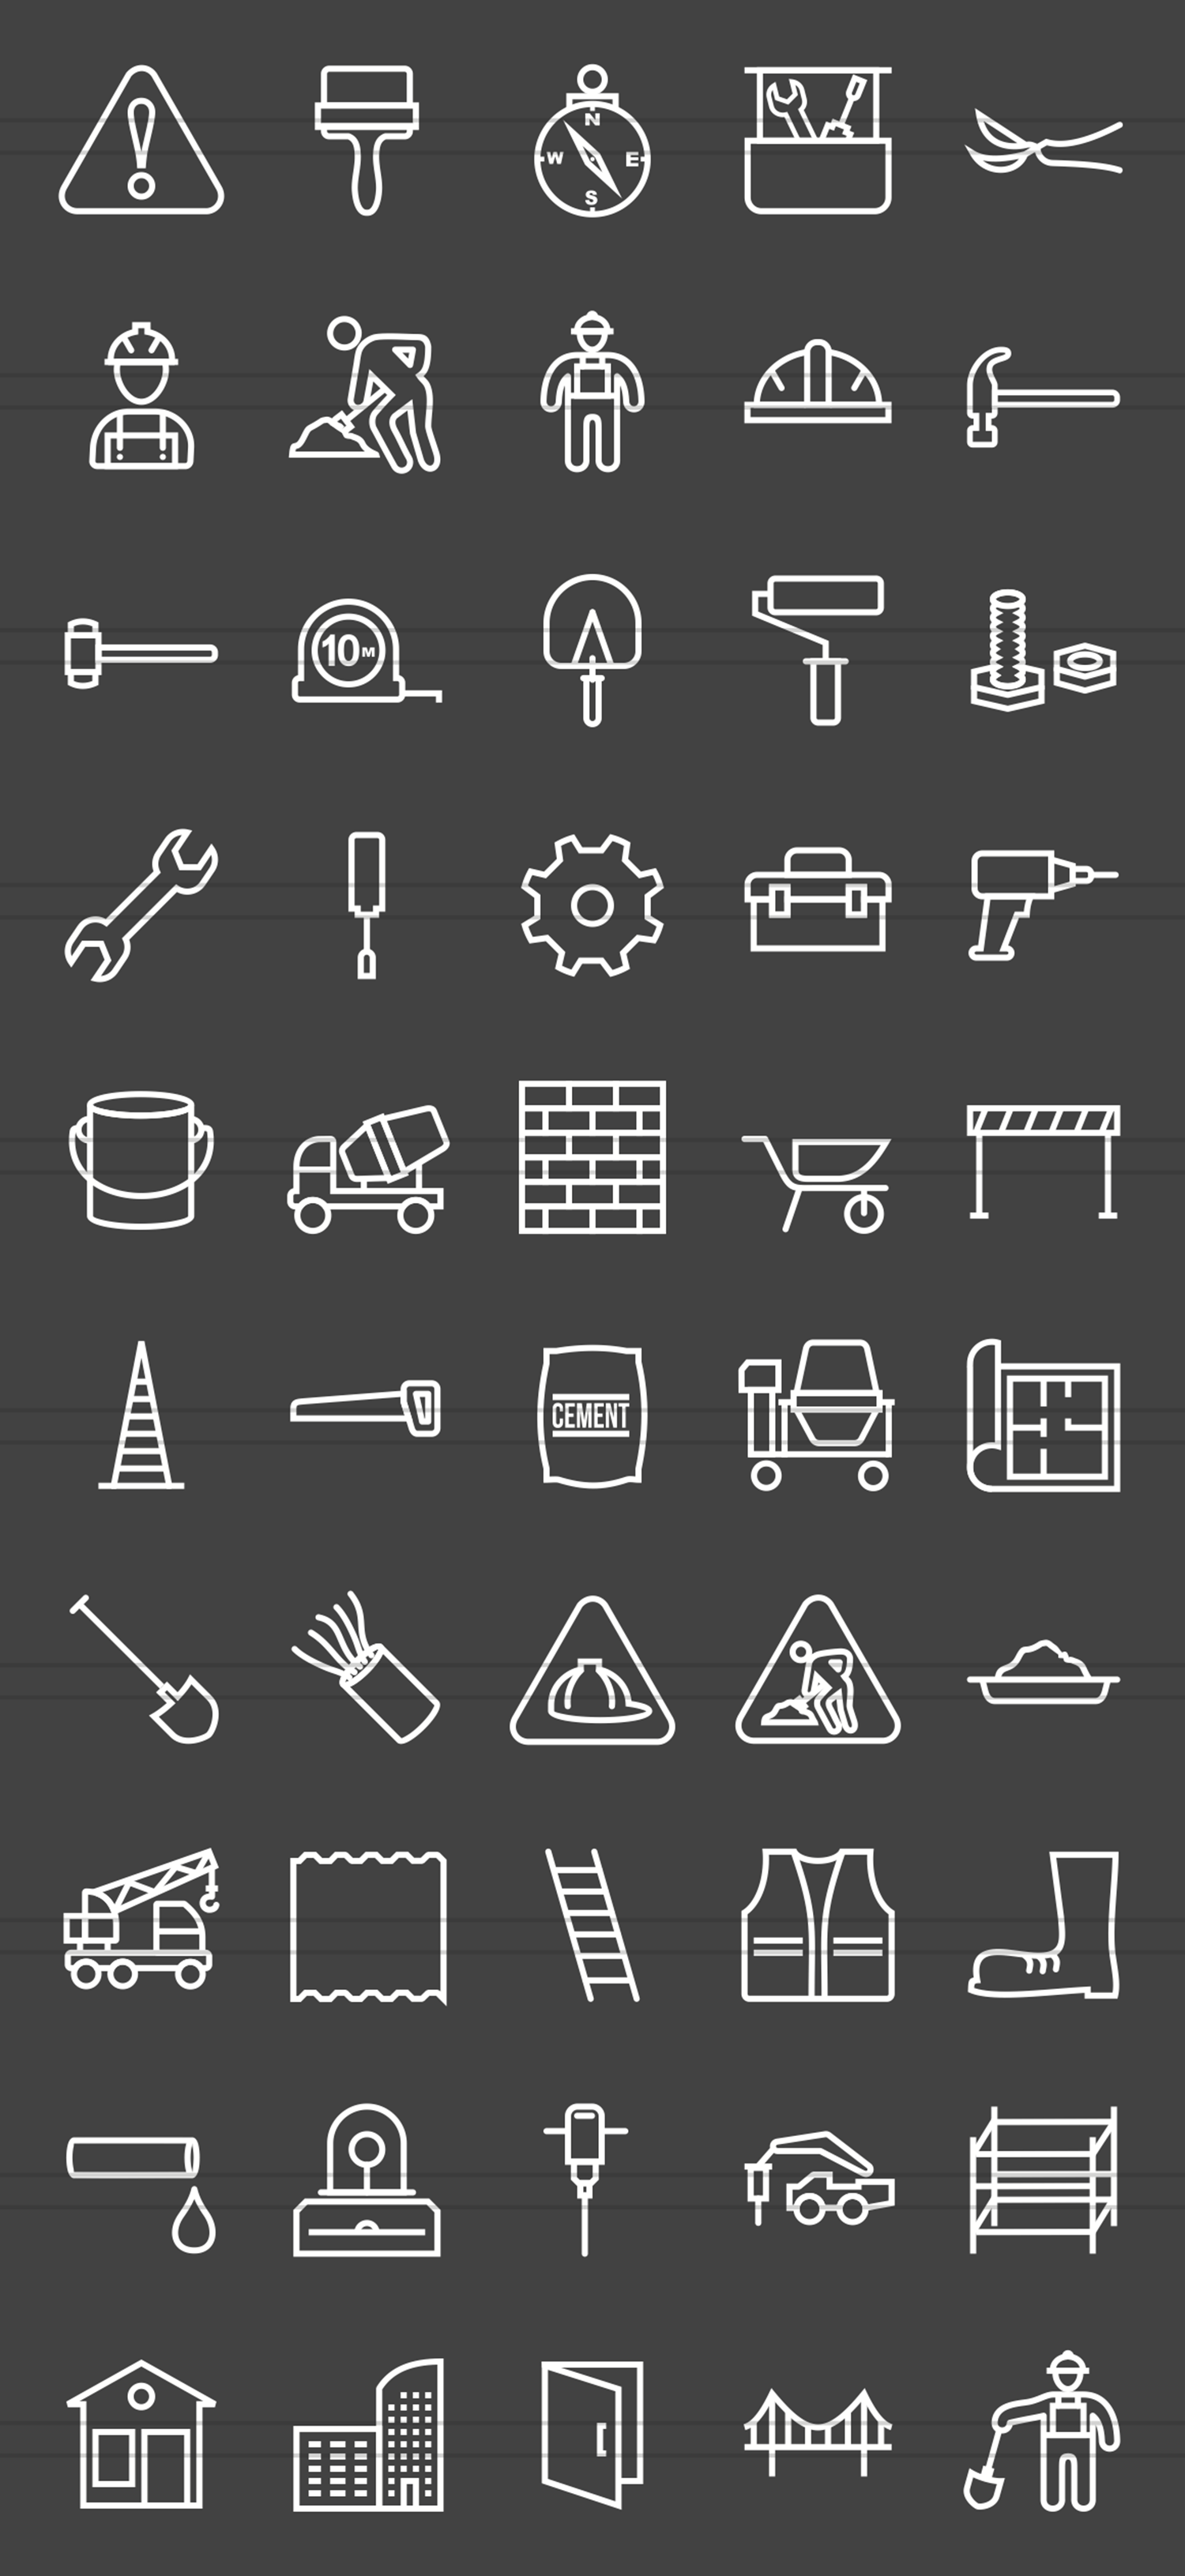 50 Construction Line Inverted Icons example image 2